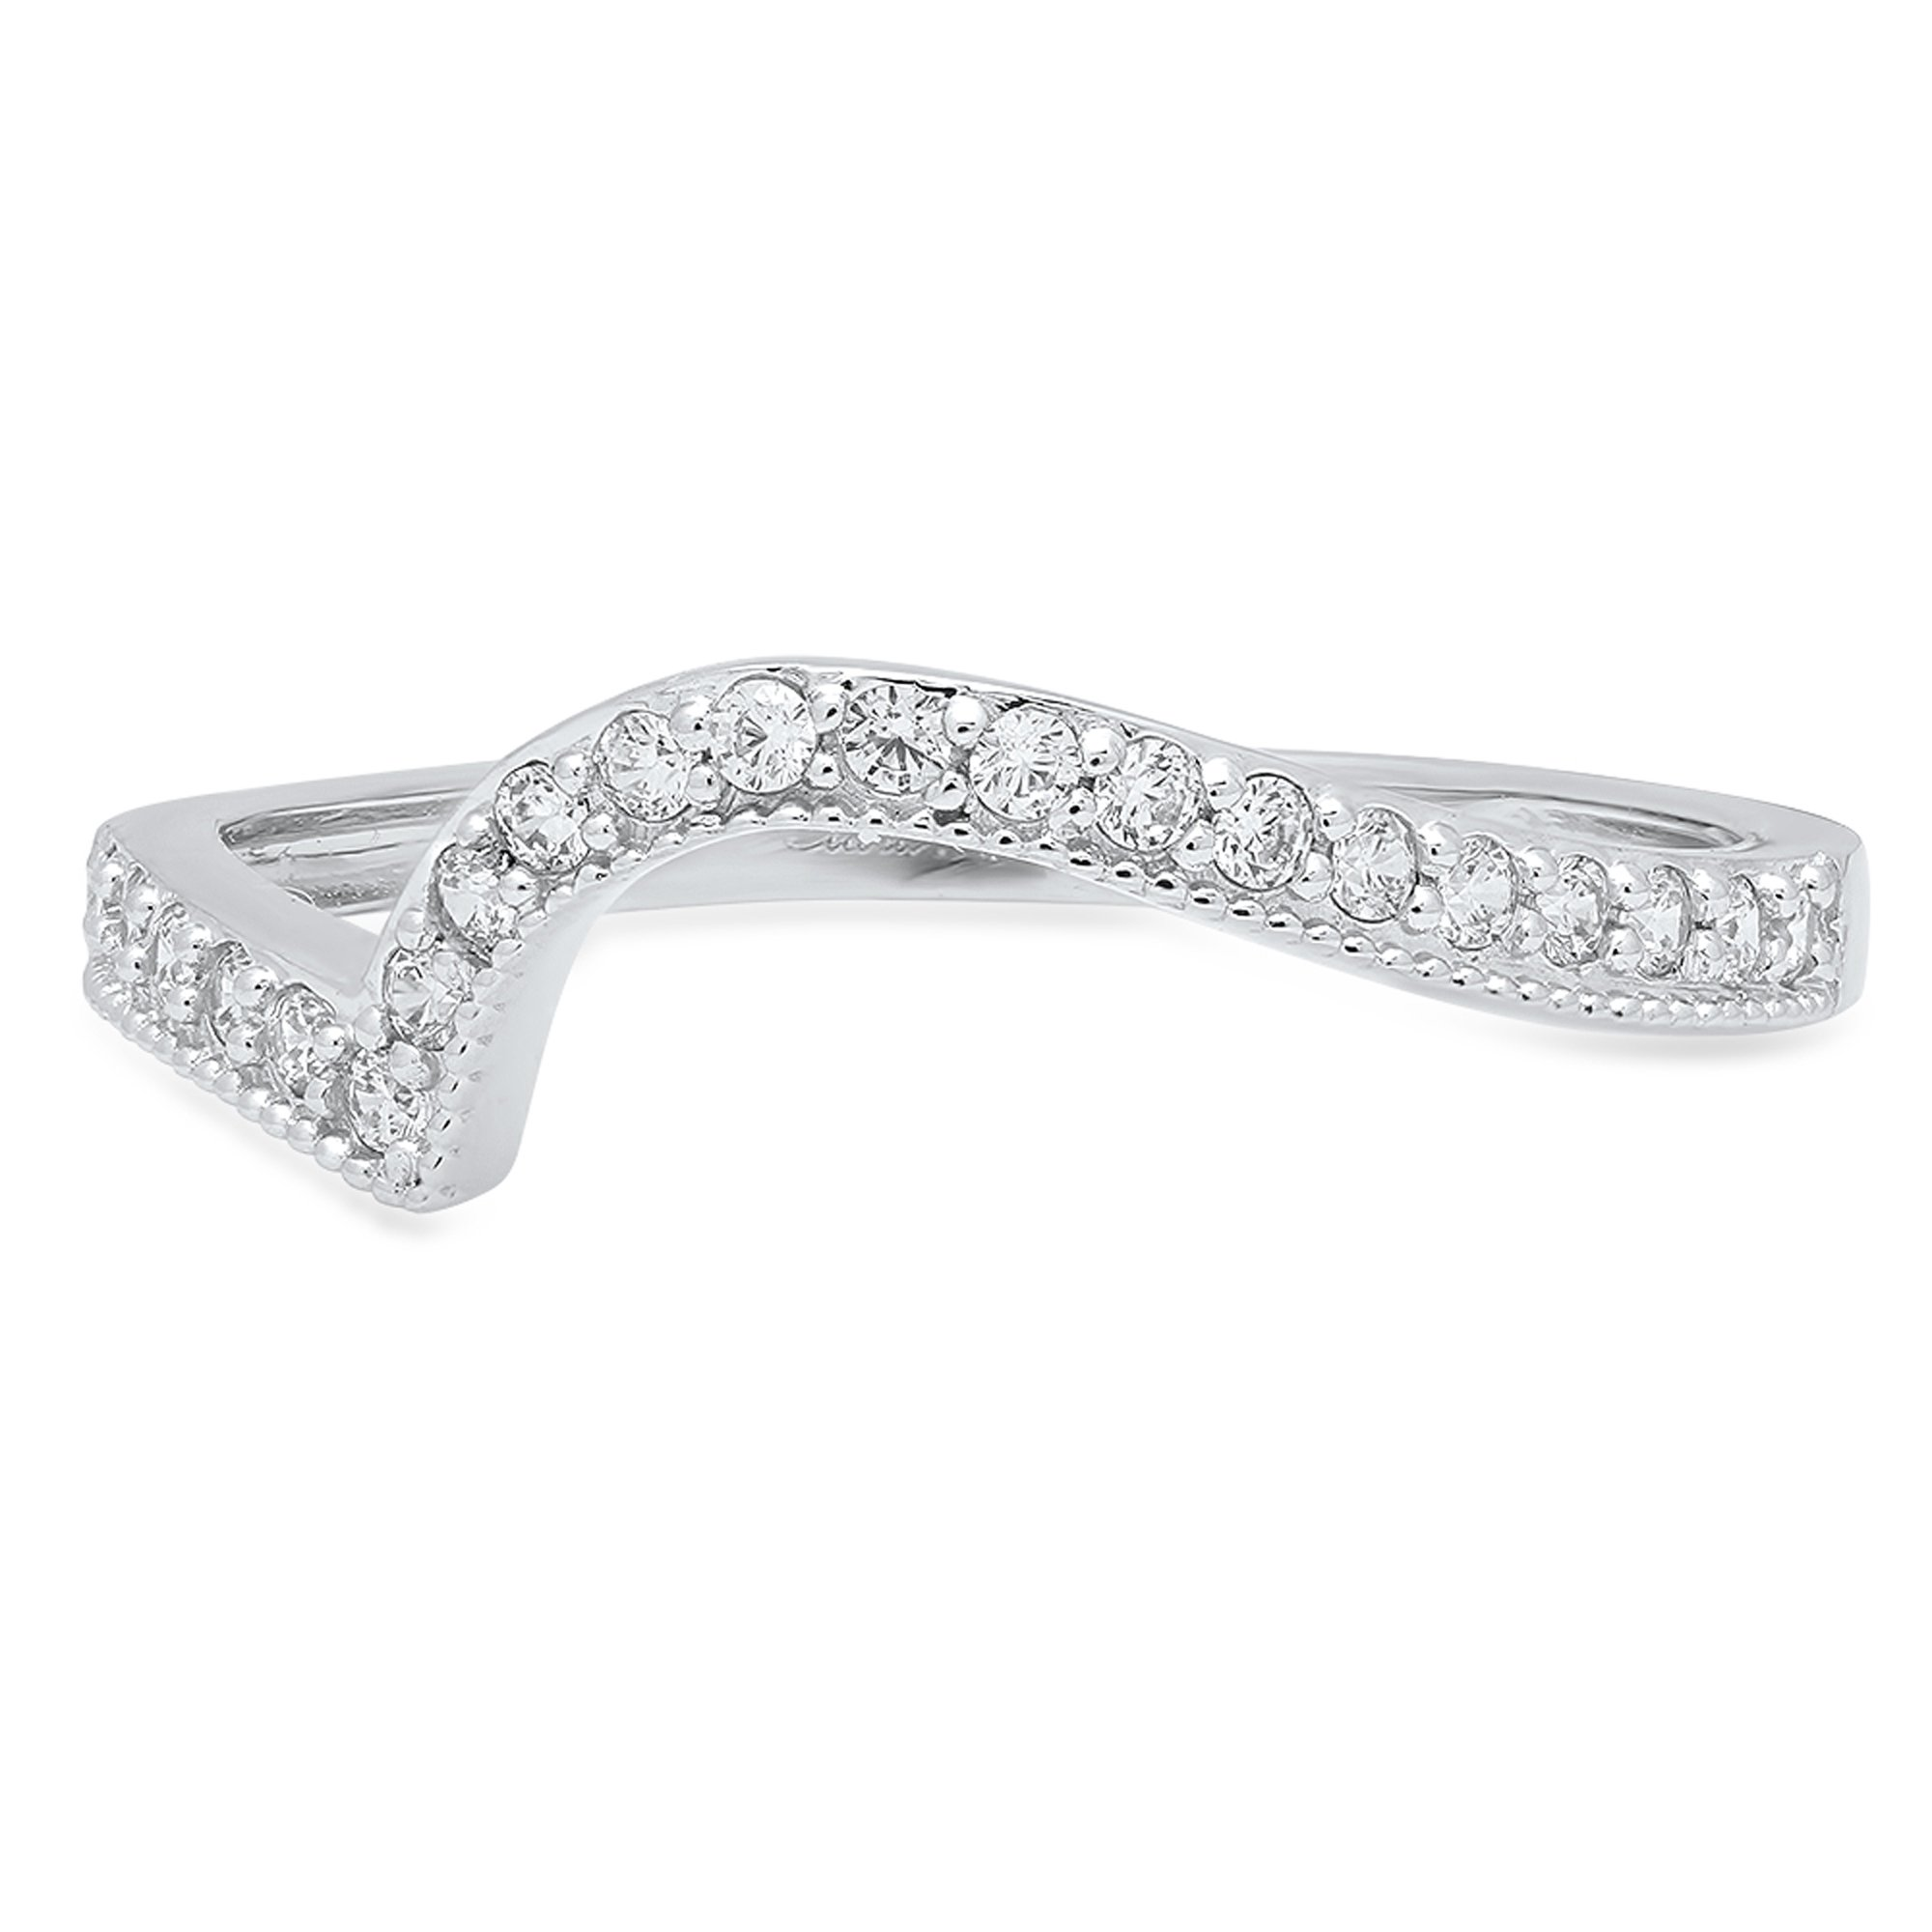 Clara Pucci 0.31 ct Brilliant Round Cut CZ Designer Curved Chevron V Shape Pave Ring Band in 14K White Gold by Clara Pucci (Image #1)